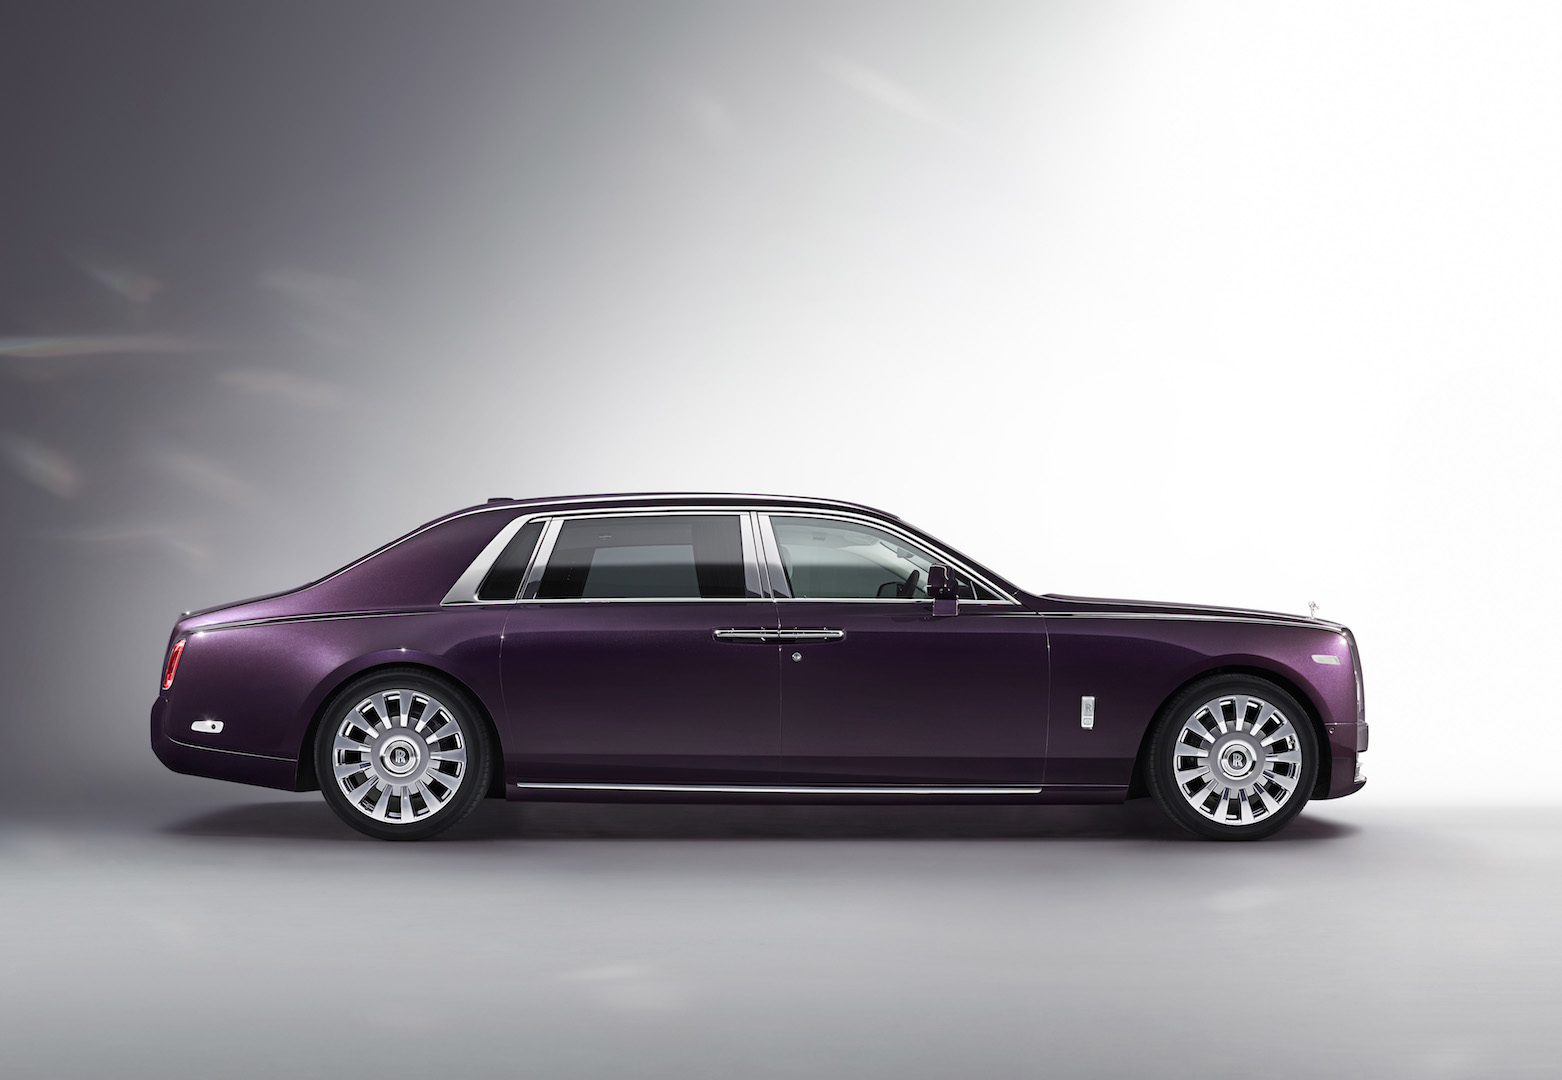 WORLD LXRY Rolls Royce Phantom 2